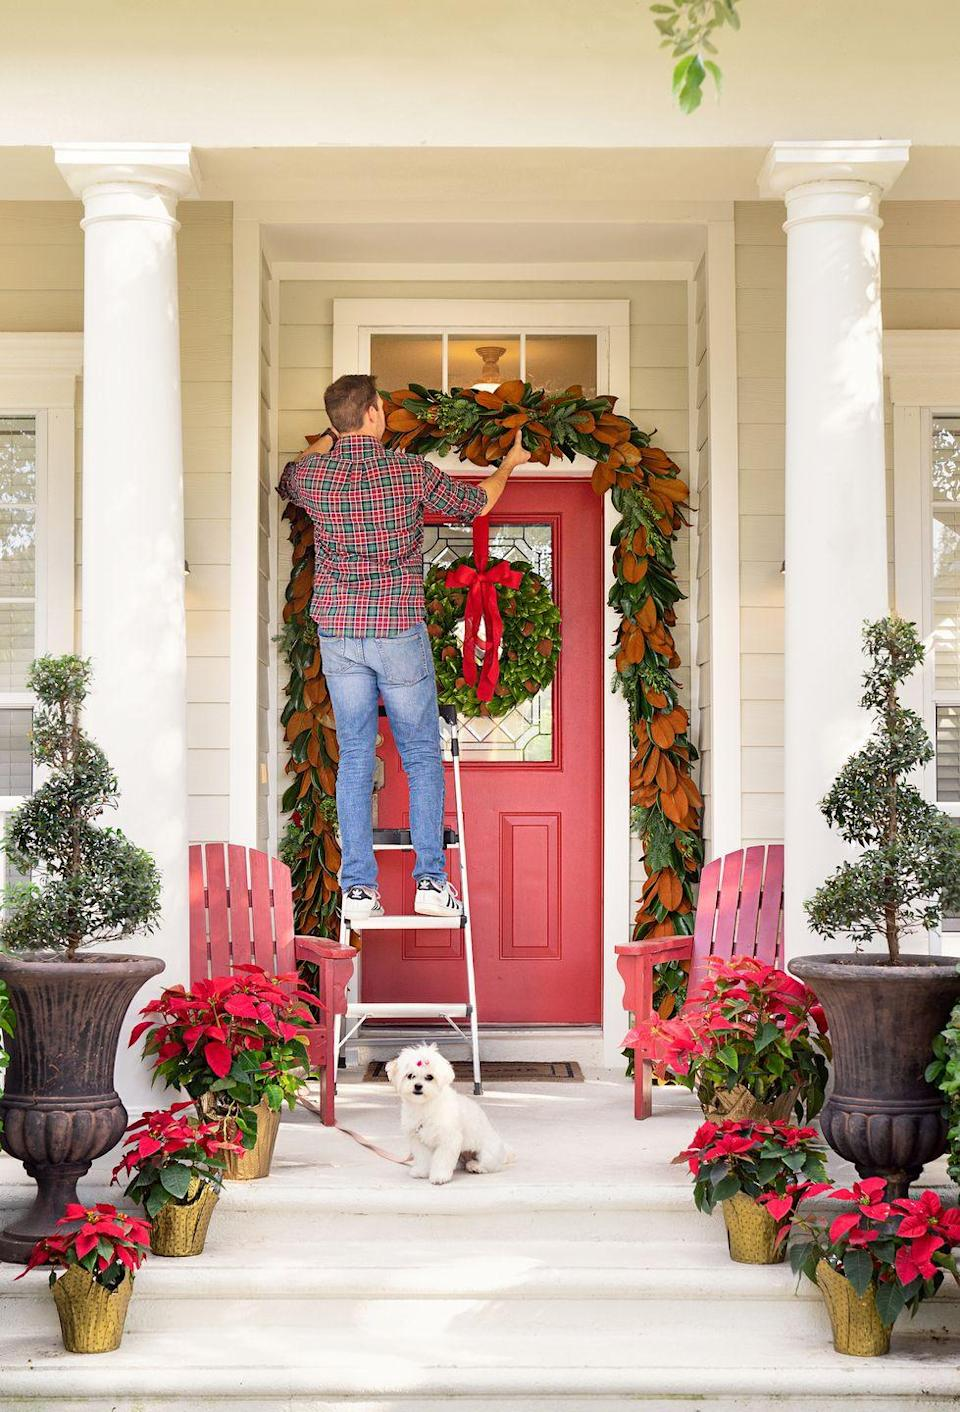 """<p>A fuss-free entryway crafted by Ashley Brooke of <a href=""""https://ashleybrookedesigns.com/"""" rel=""""nofollow noopener"""" target=""""_blank"""" data-ylk=""""slk:Ashley Brooke Designs"""" class=""""link rapid-noclick-resp"""">Ashley Brooke Designs</a> features signature holiday blooms with poinsettias wrapped in gold. </p>"""